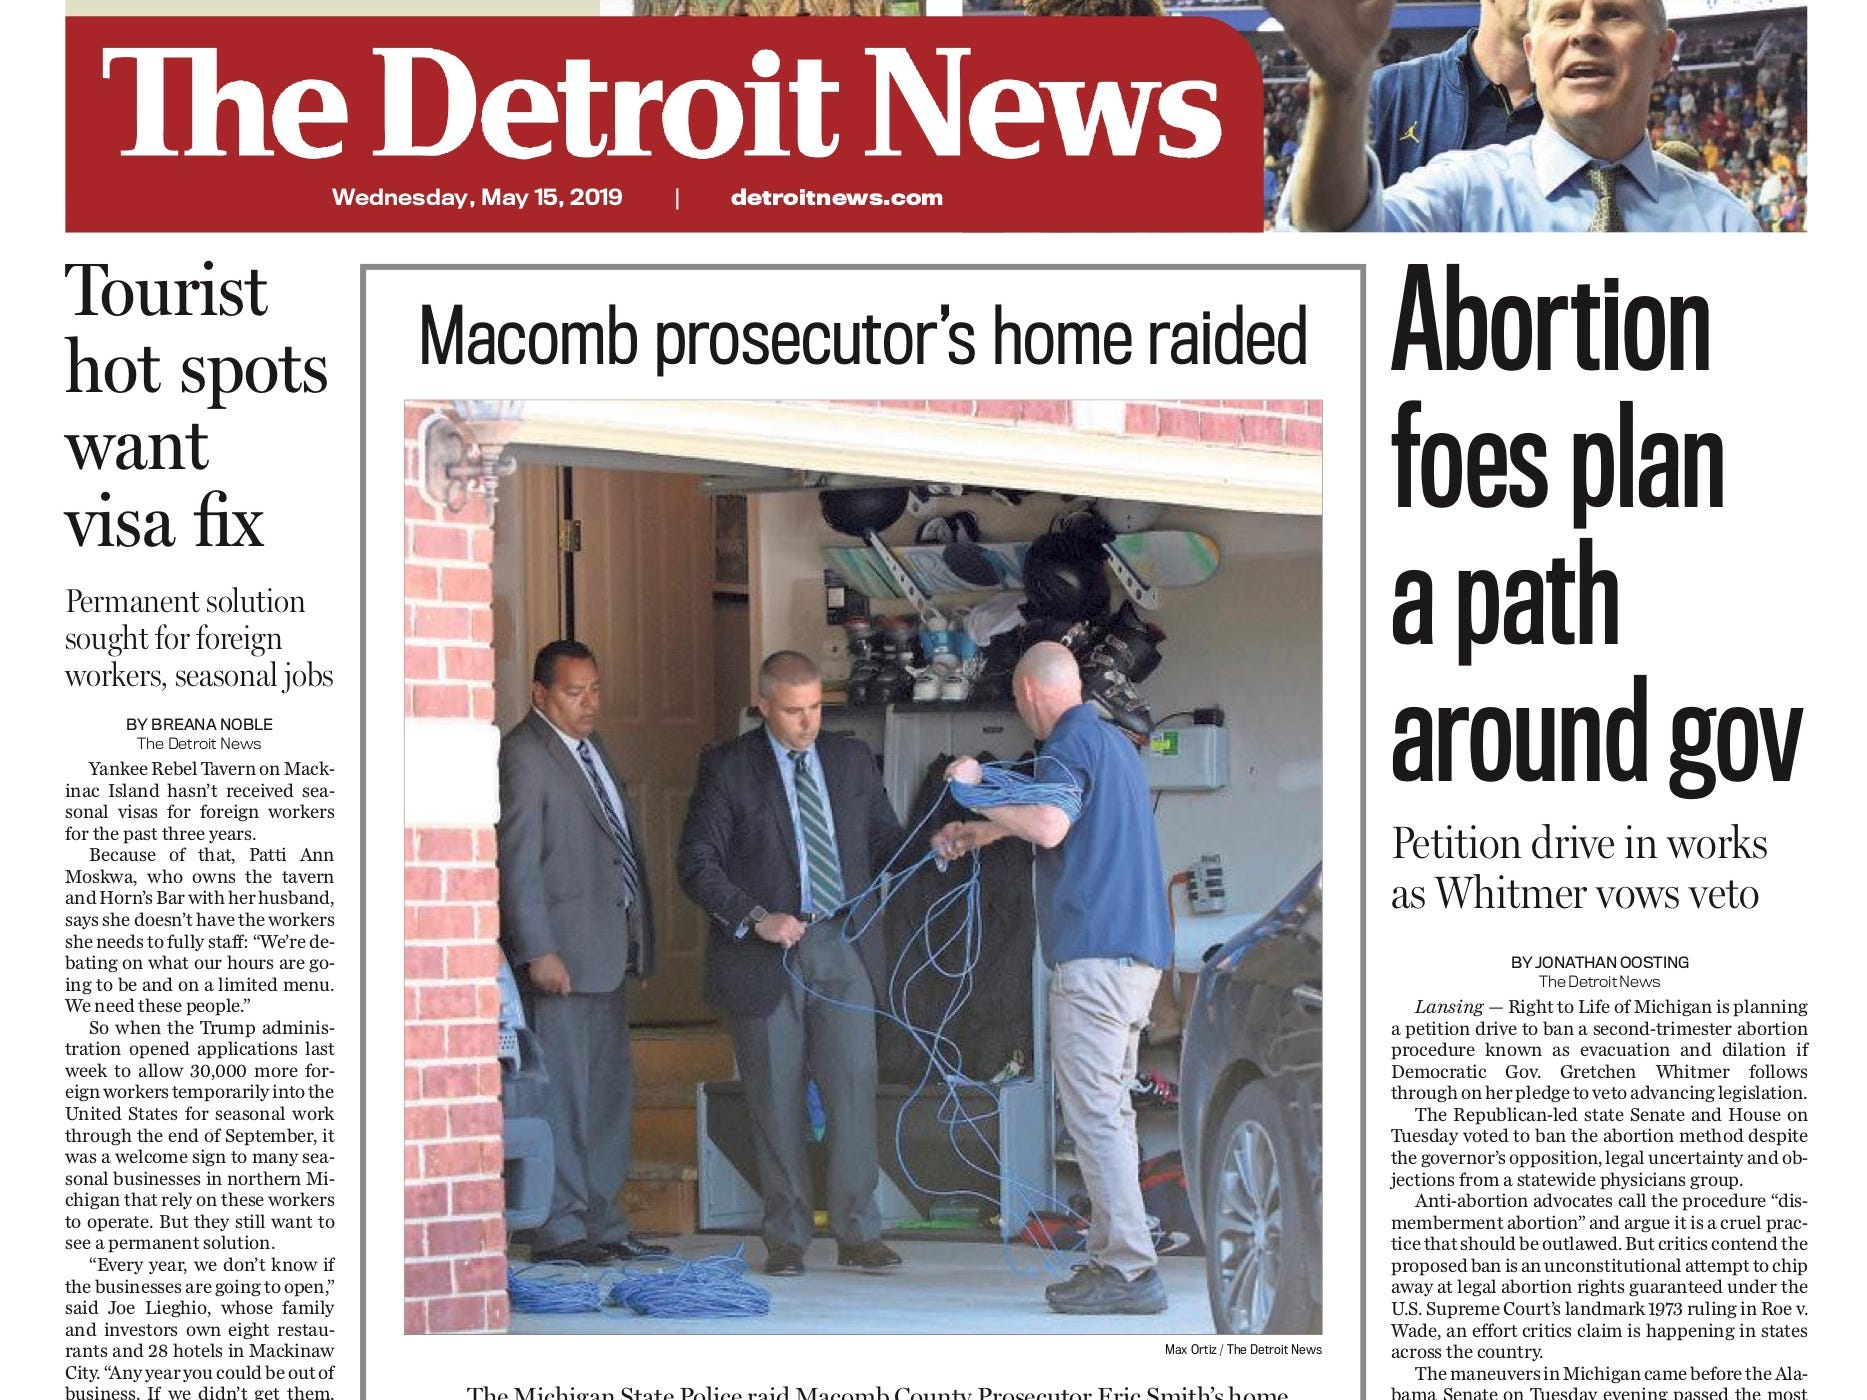 The front page of the Detroit News on May 15, 2019.